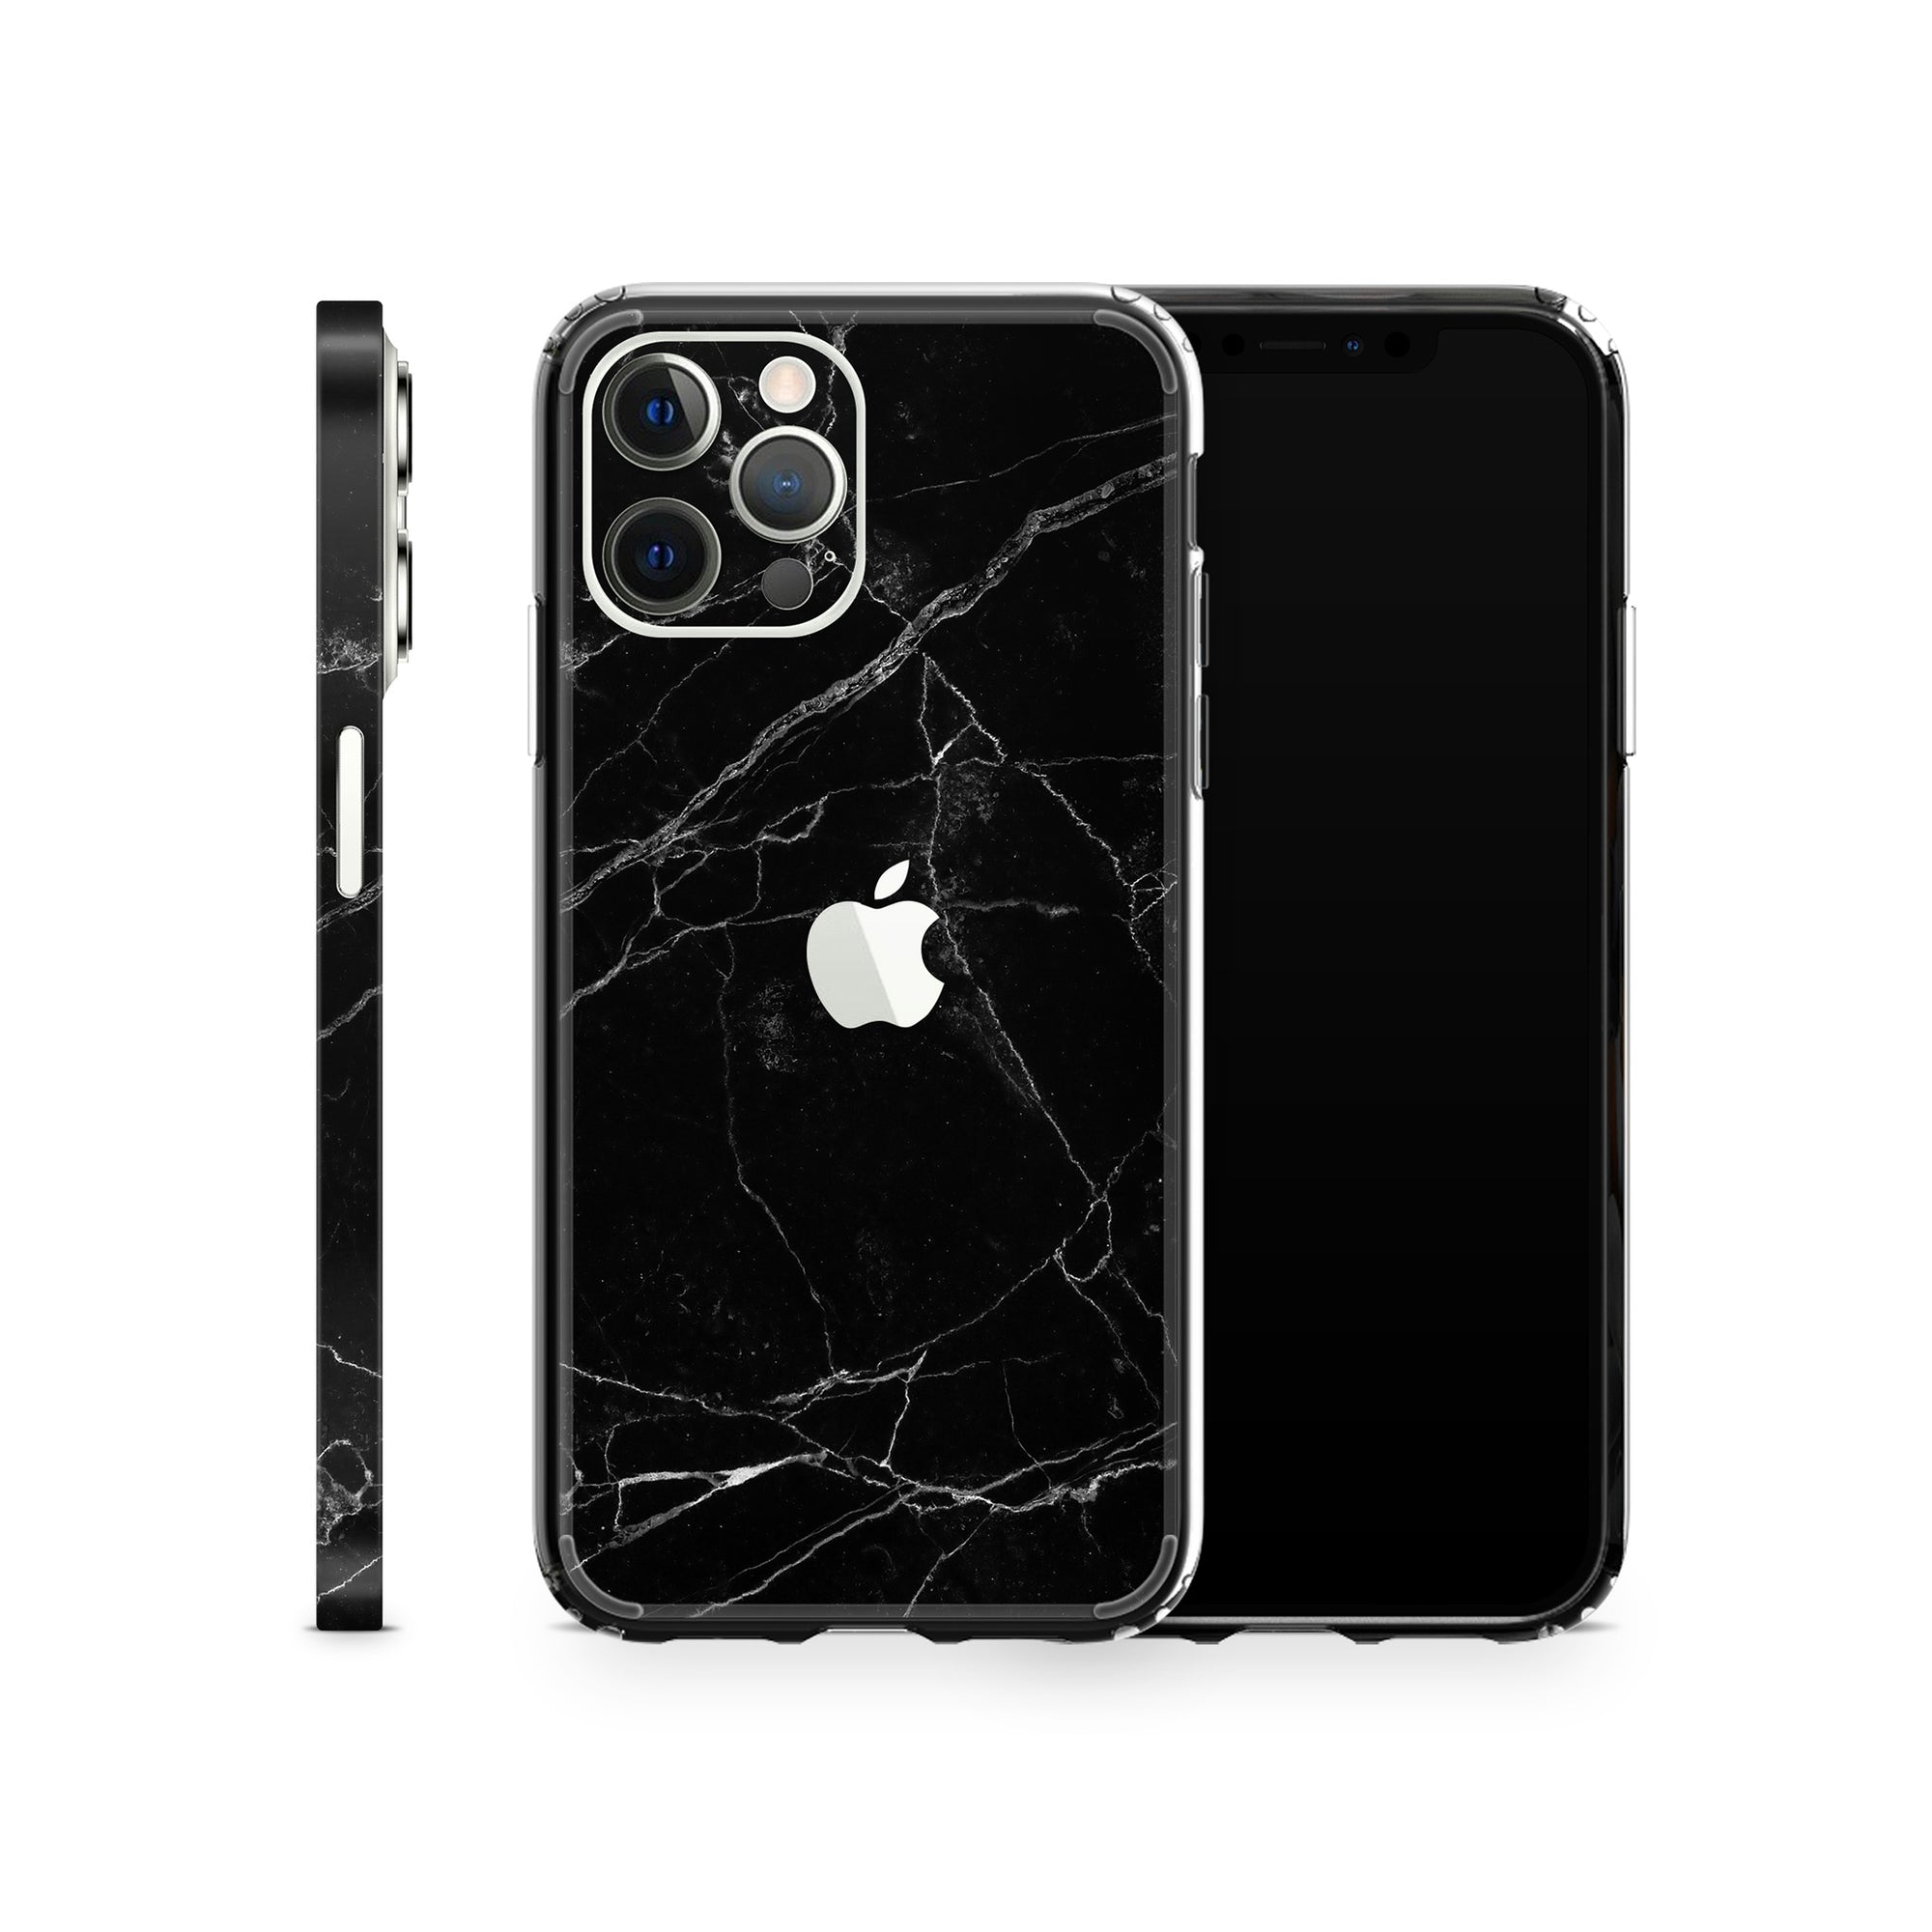 iPhone Case 12 Pro Max Black Marble